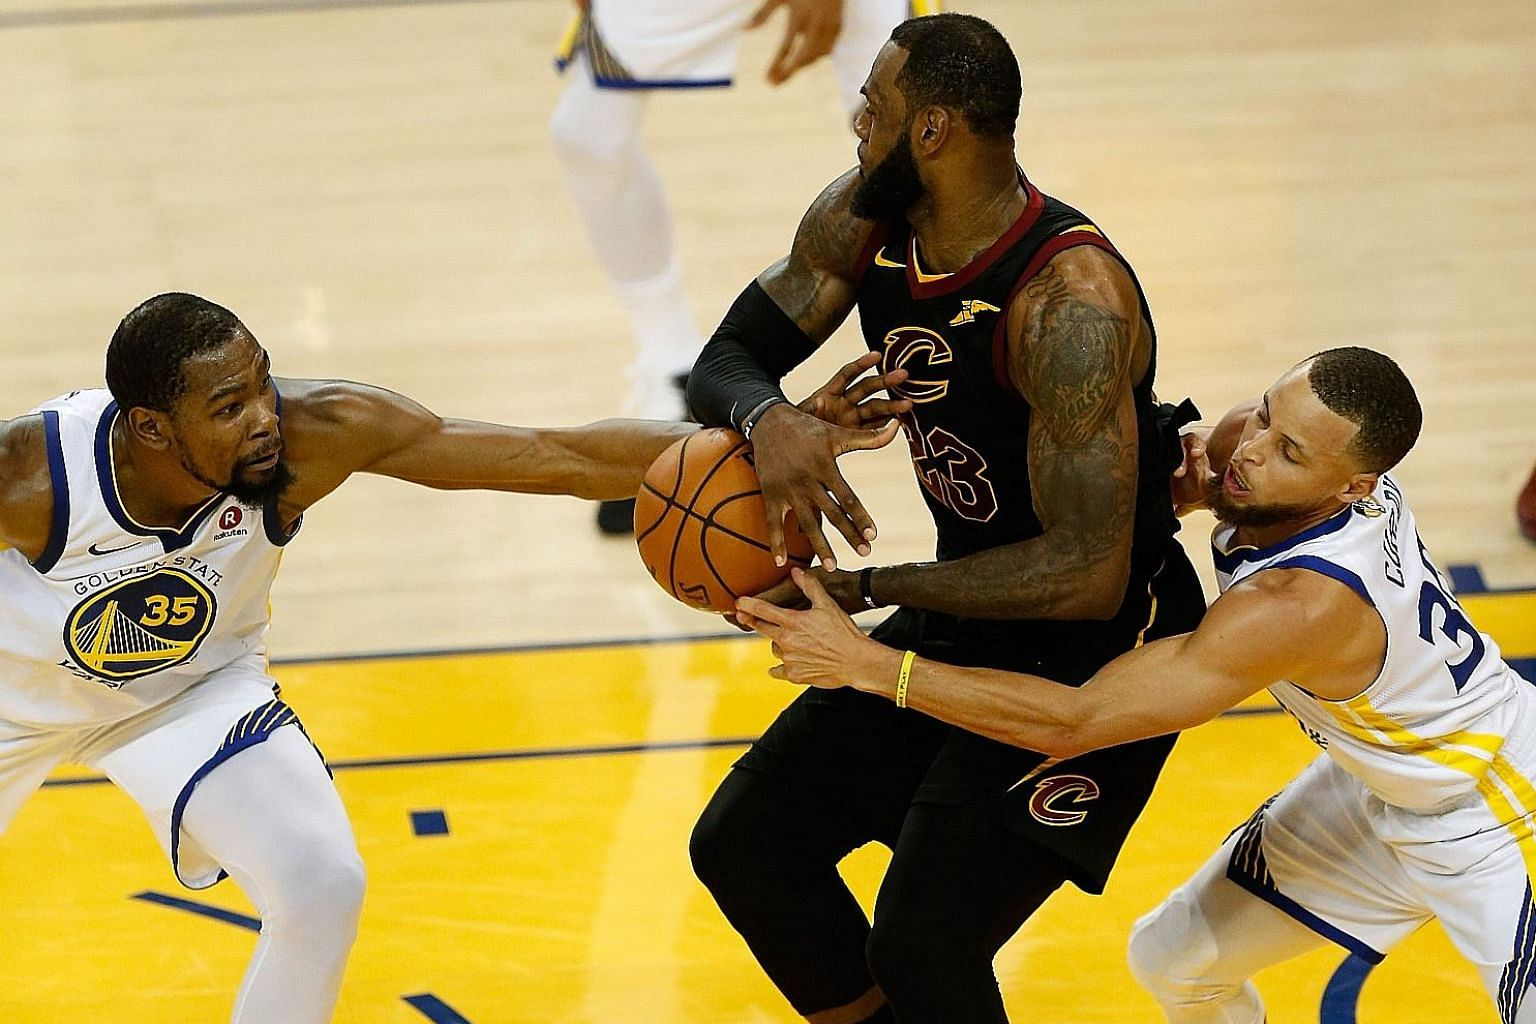 LeBron James of the Cleveland Cavaliers is defended by Kevin Durant (left) and Stephen Curry of the Golden State Warriors in Game 1 of the NBA Finals yesterday. The Warriors won 124-114 in overtime after the scores were tied 107-107 in regulation. Ja